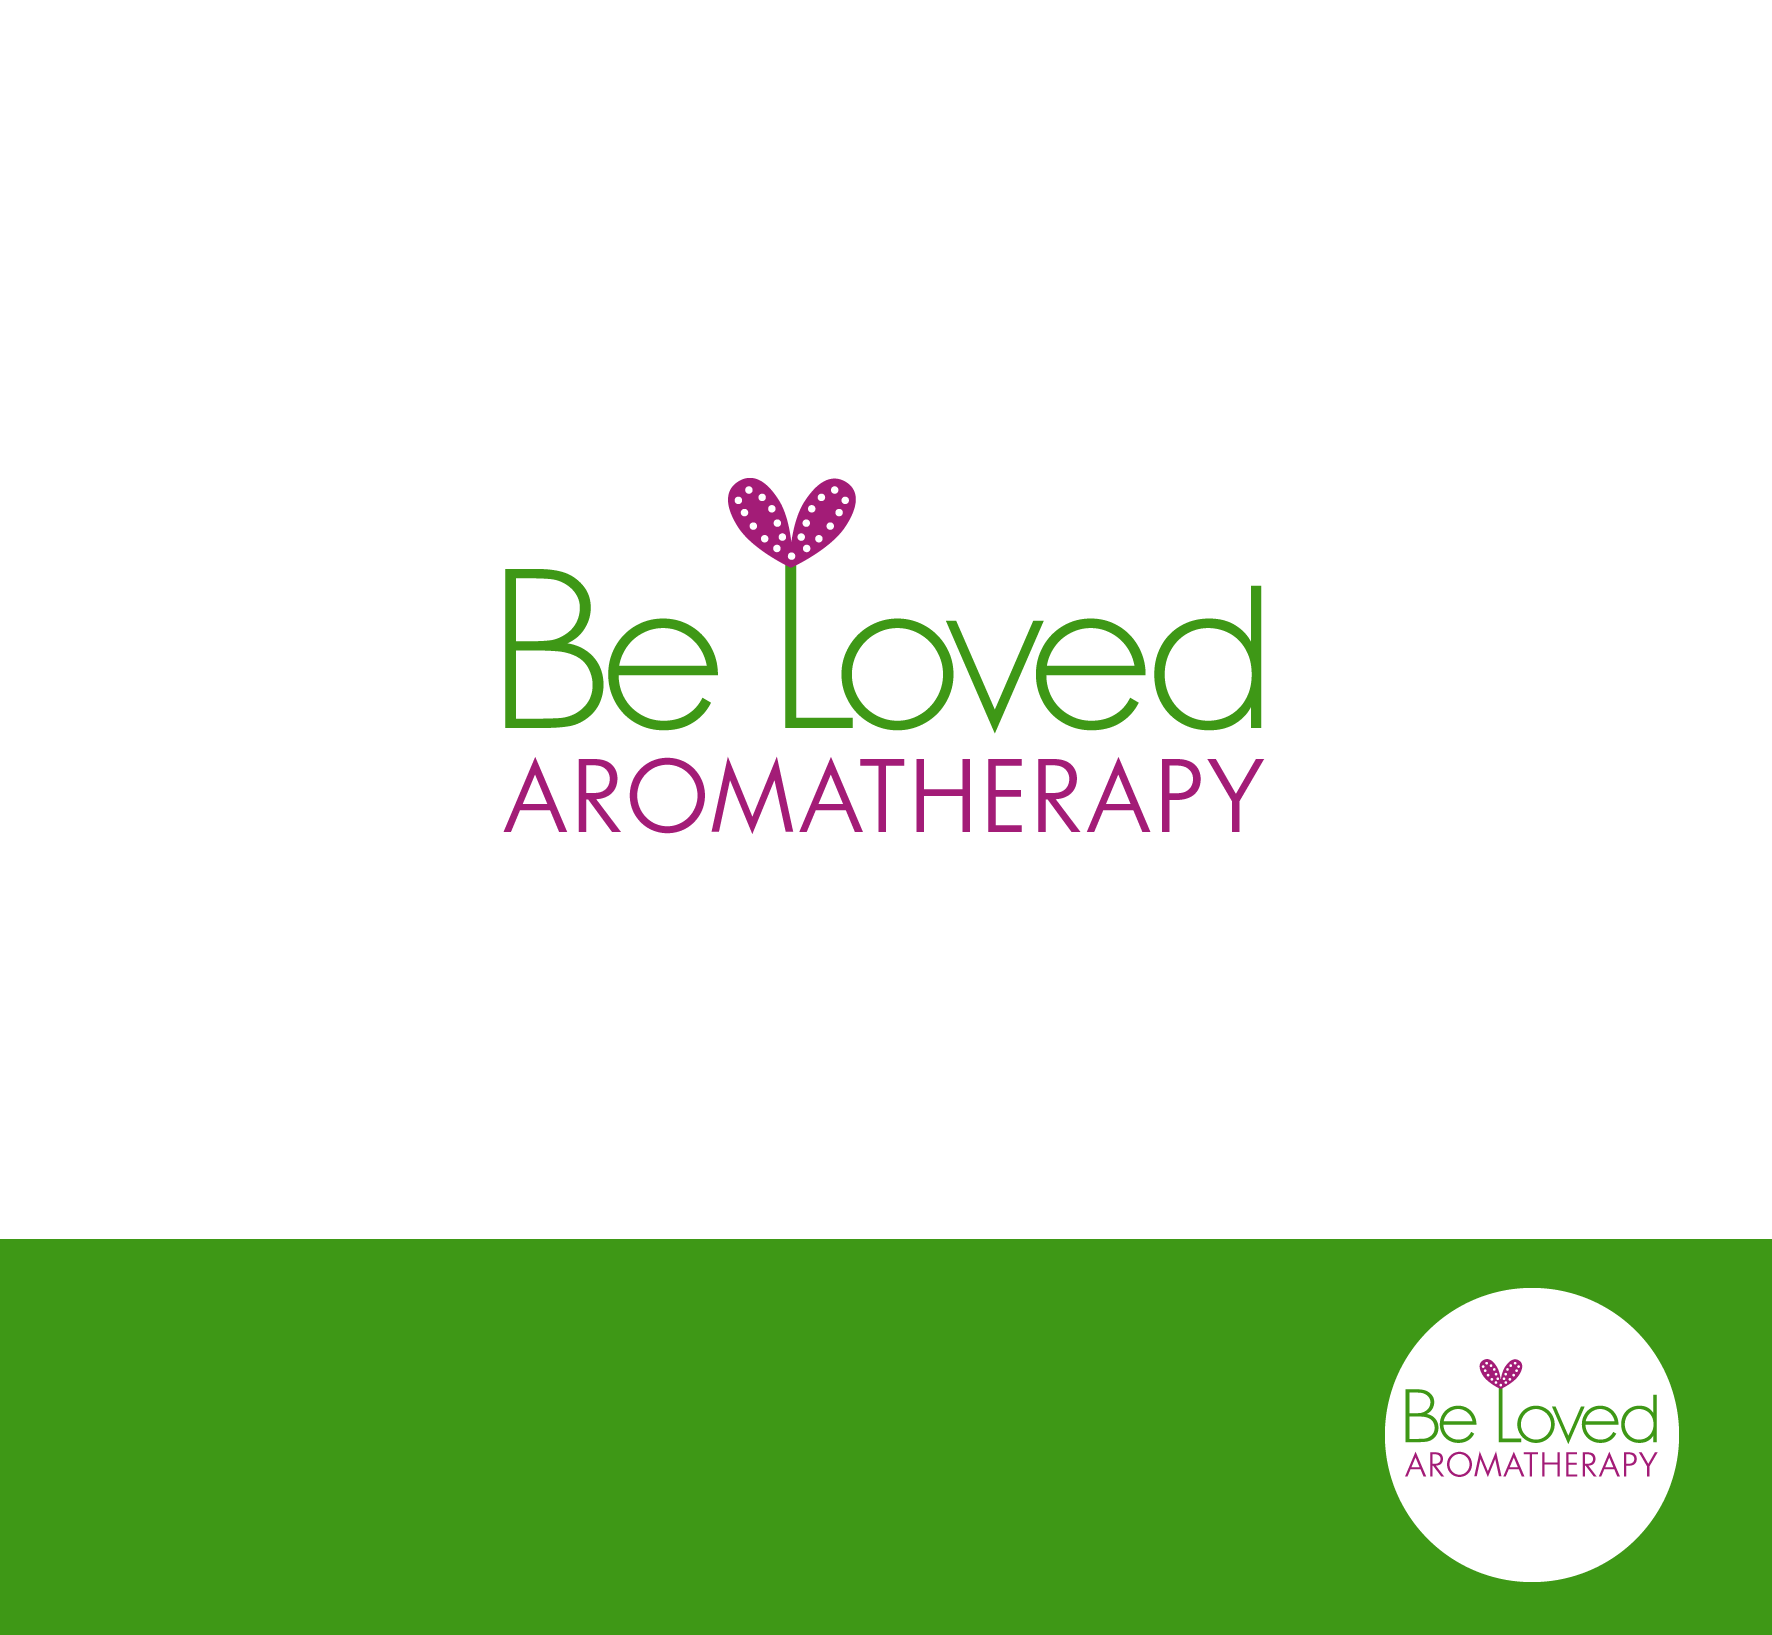 Logo Design by luna - Entry No. 57 in the Logo Design Contest Fun Logo Design for Be Loved Aromatherapy.